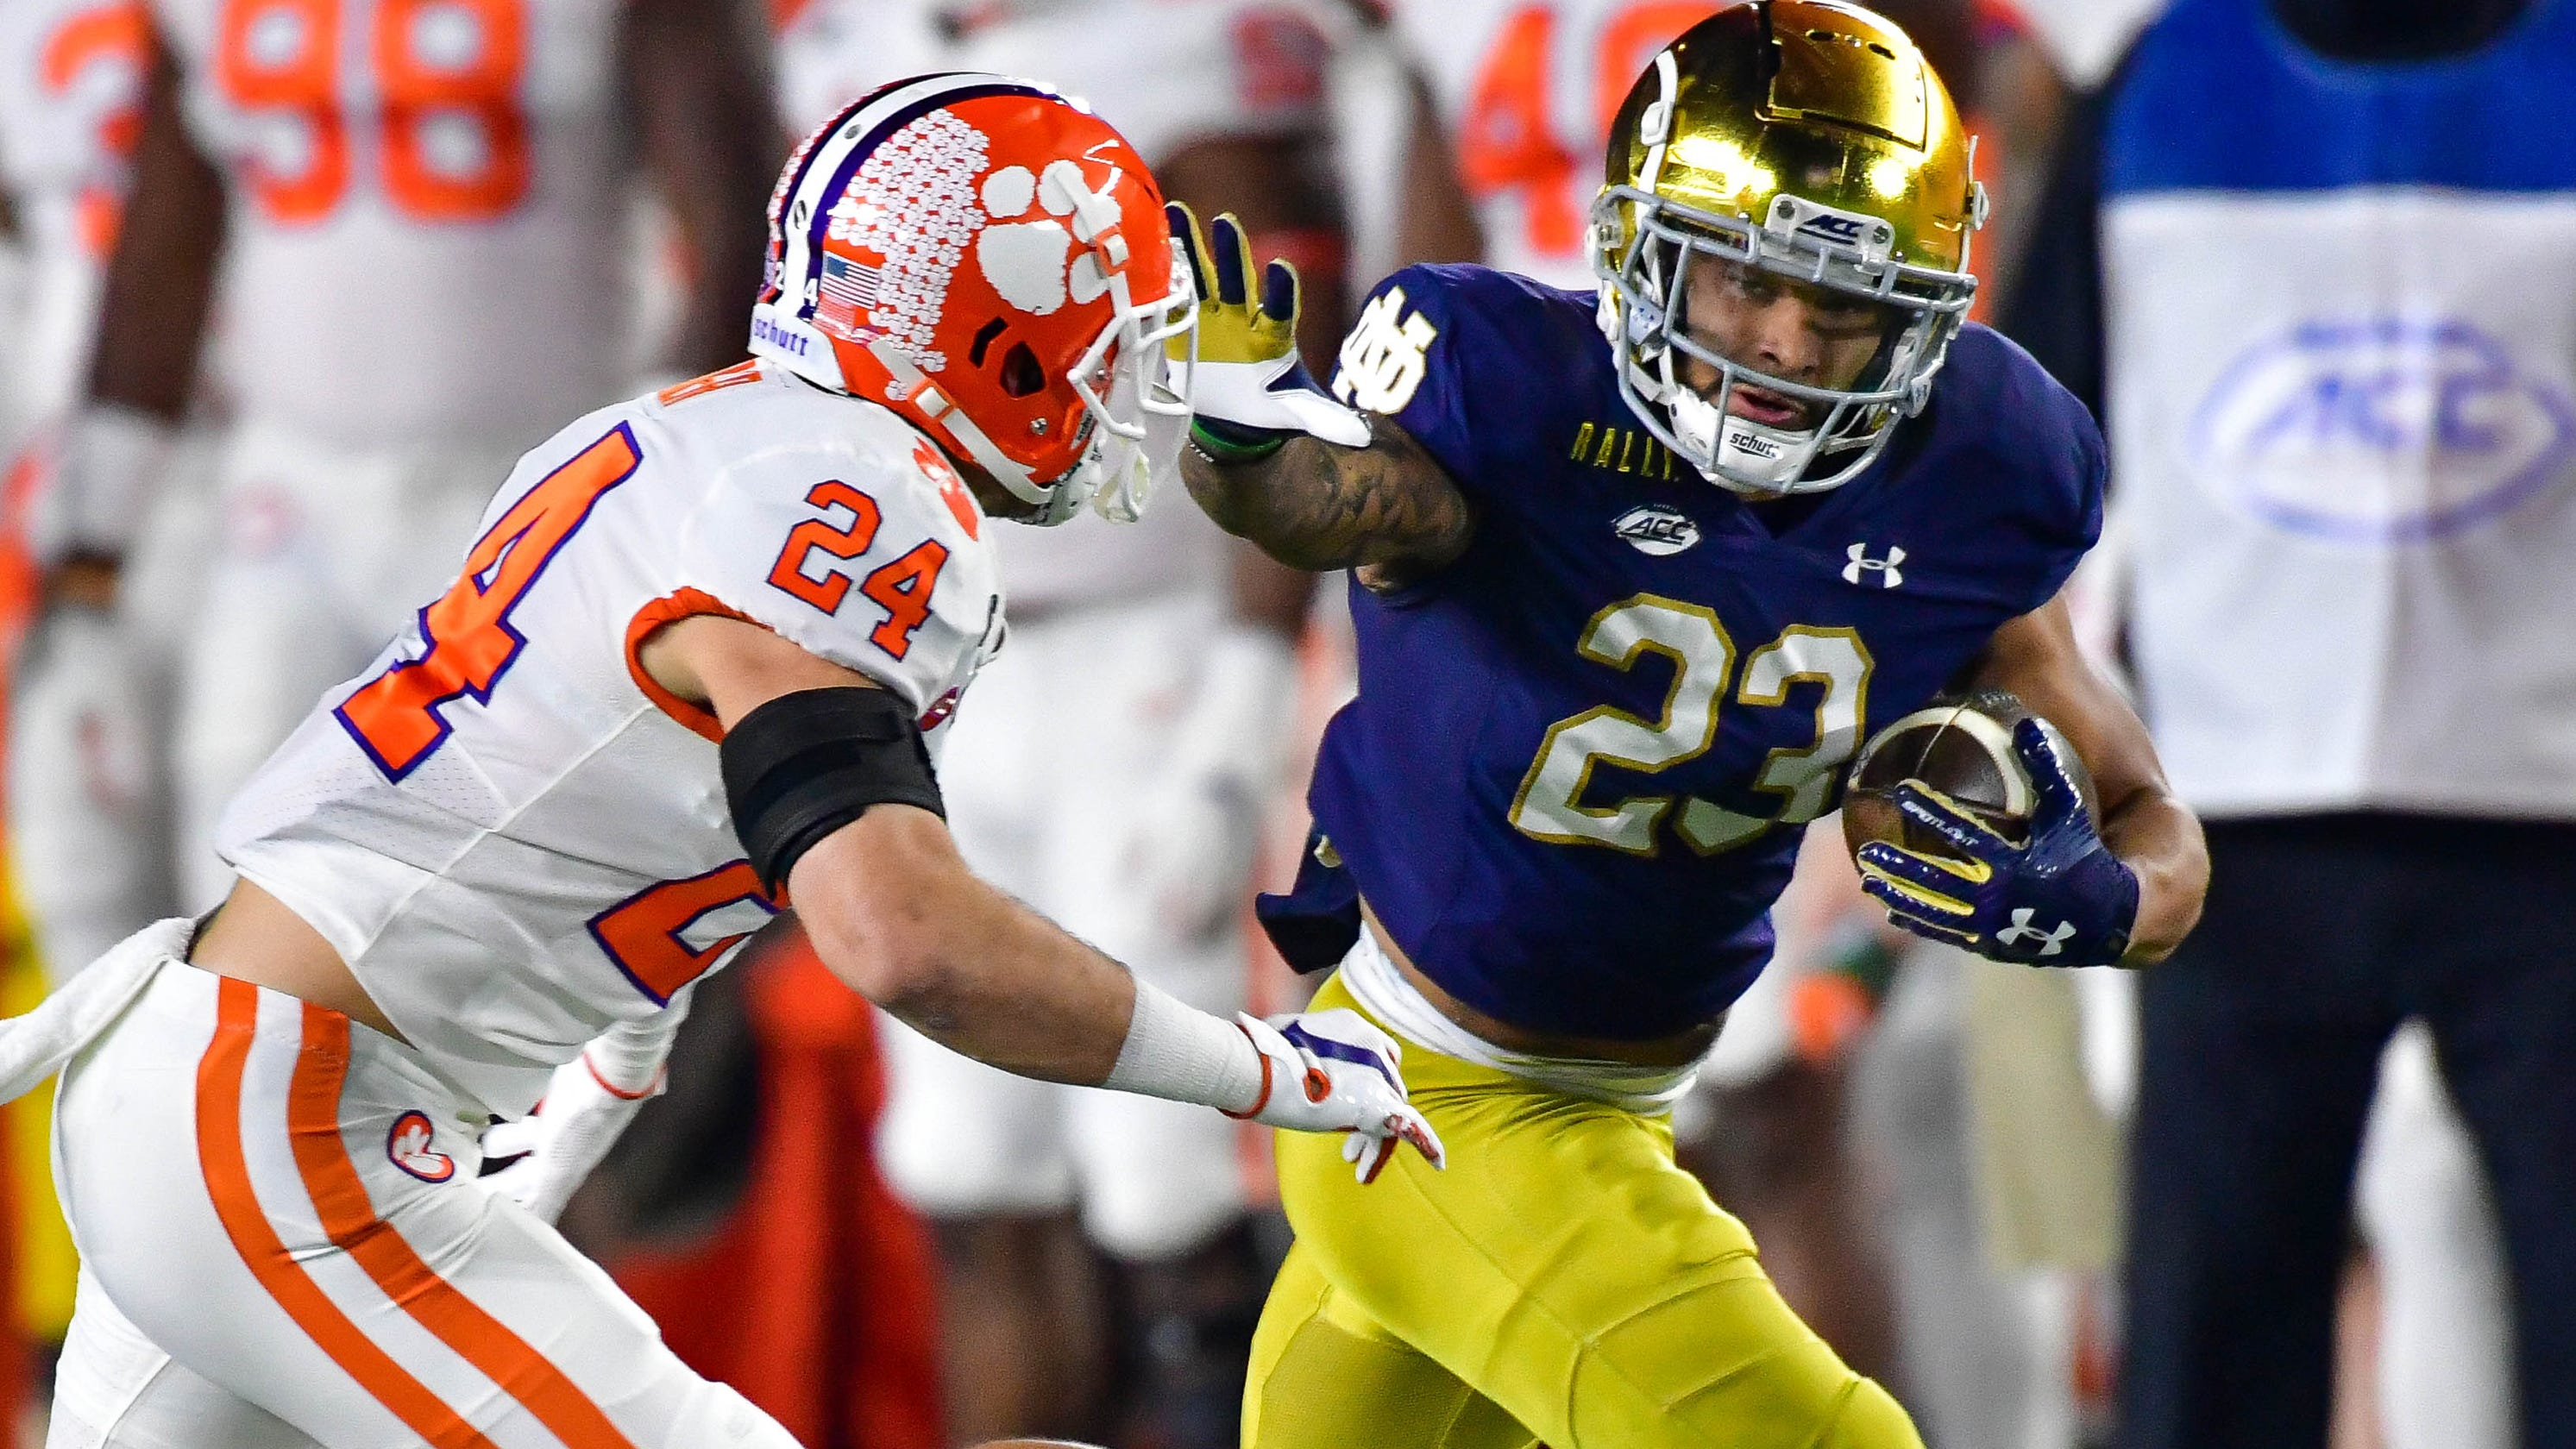 Five games in Week 13 with the biggest impact on the College Football Playoff